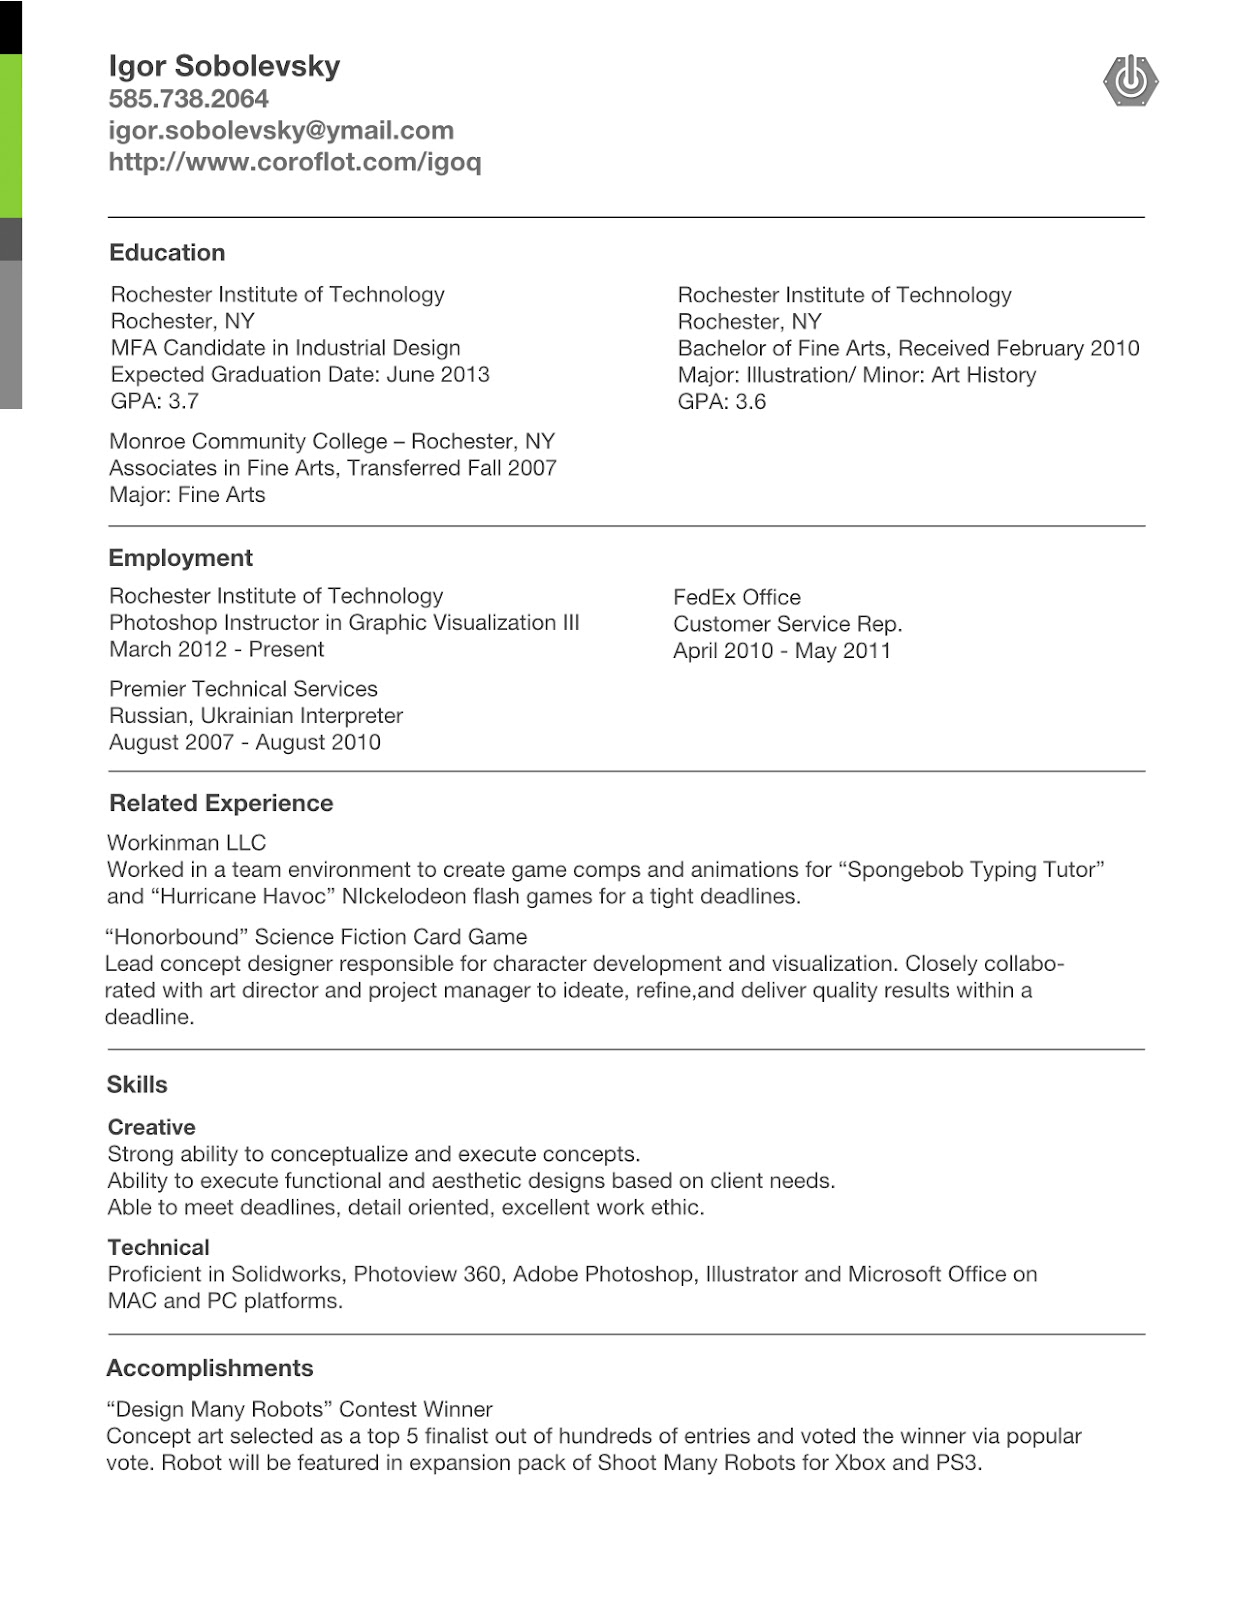 resume - Industrial Design Engineer Sample Resume